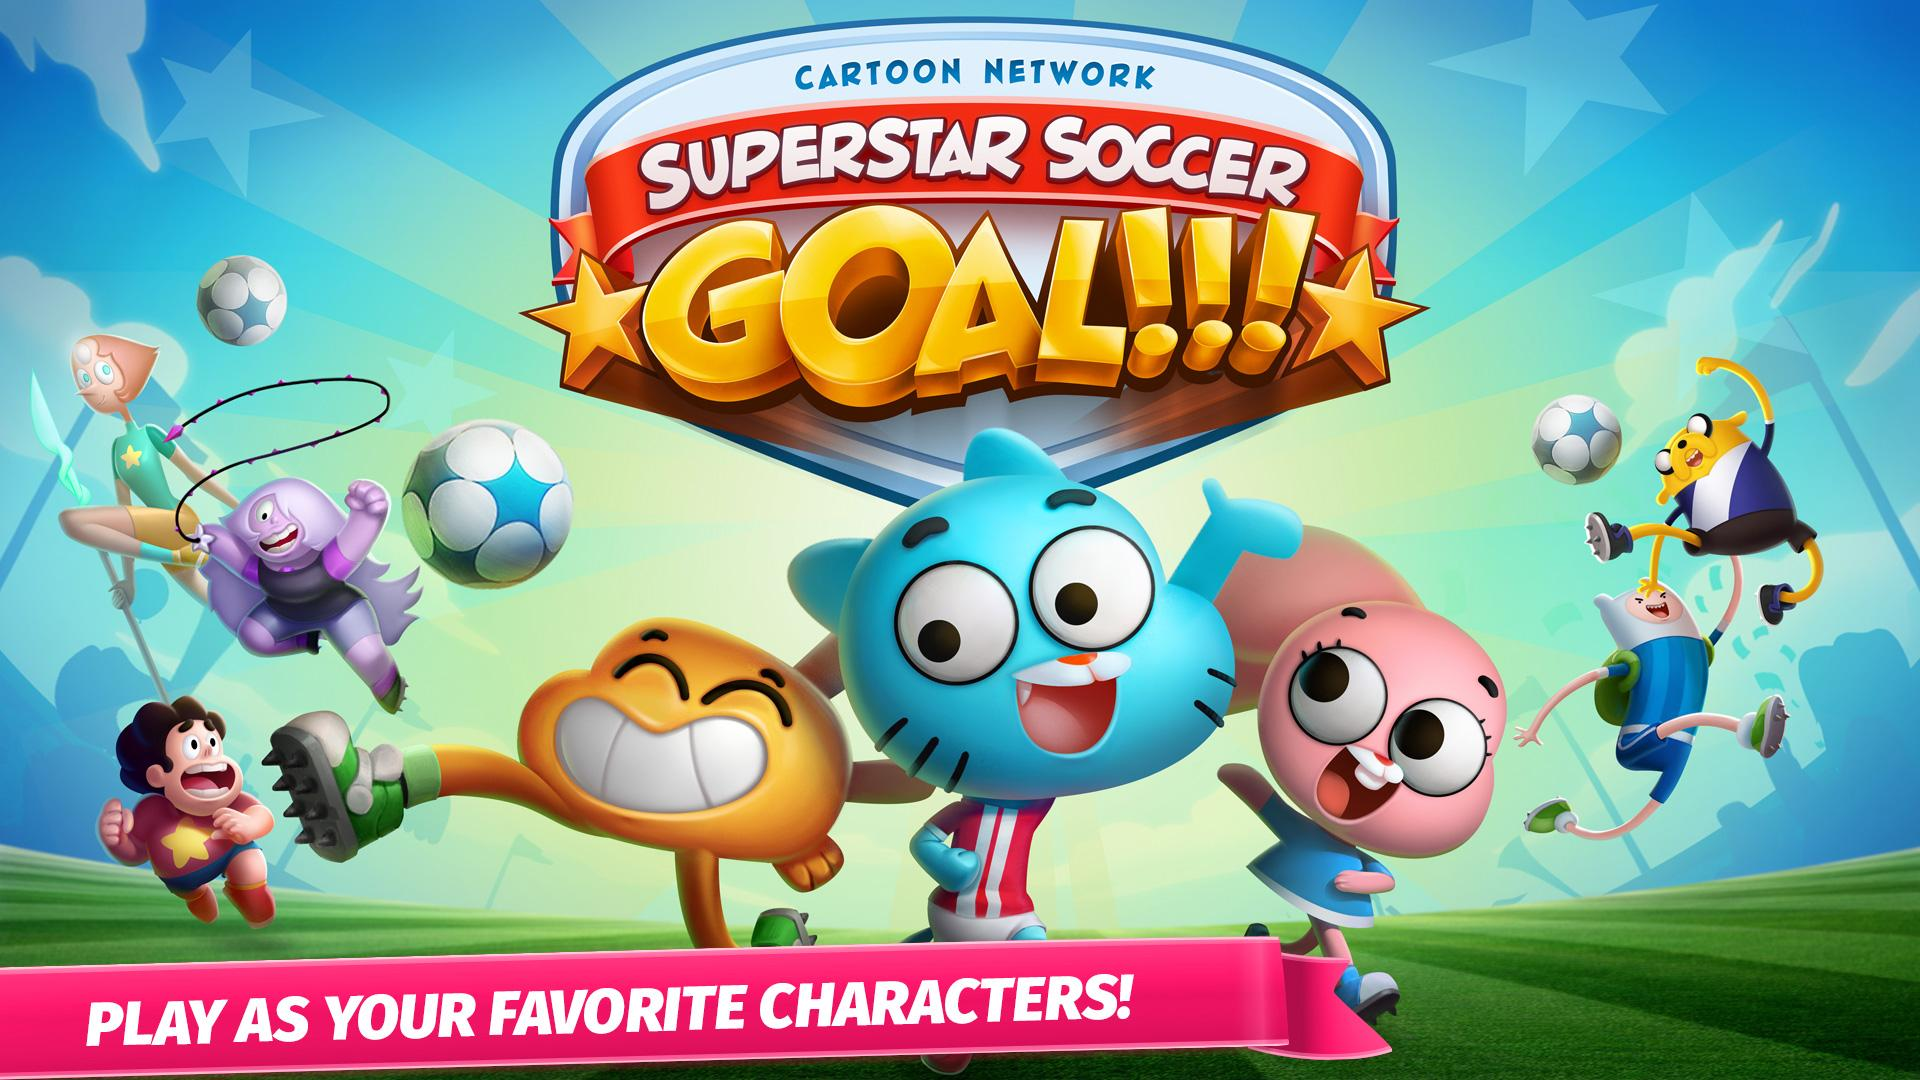 CN Superstar Soccer: Goal!!! screenshot #11